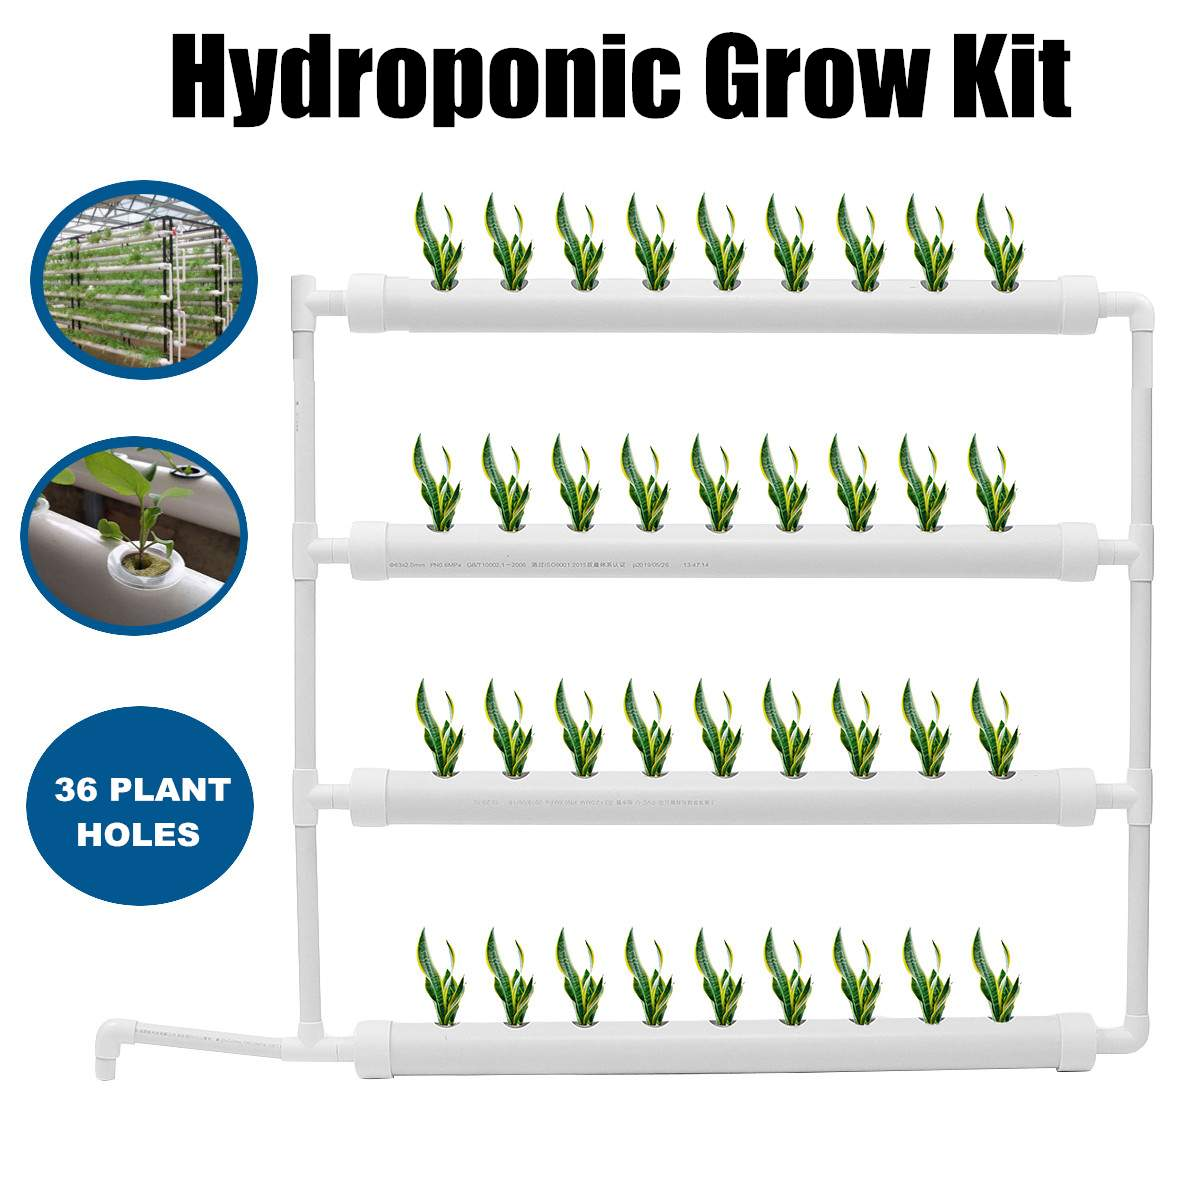 PVC 4 Pipes Wall-mounted Hydroponic Nursery Pots Rack 63mm 36 Plant Sites Growing Kit Water Pump Tube Set White Garden Tools